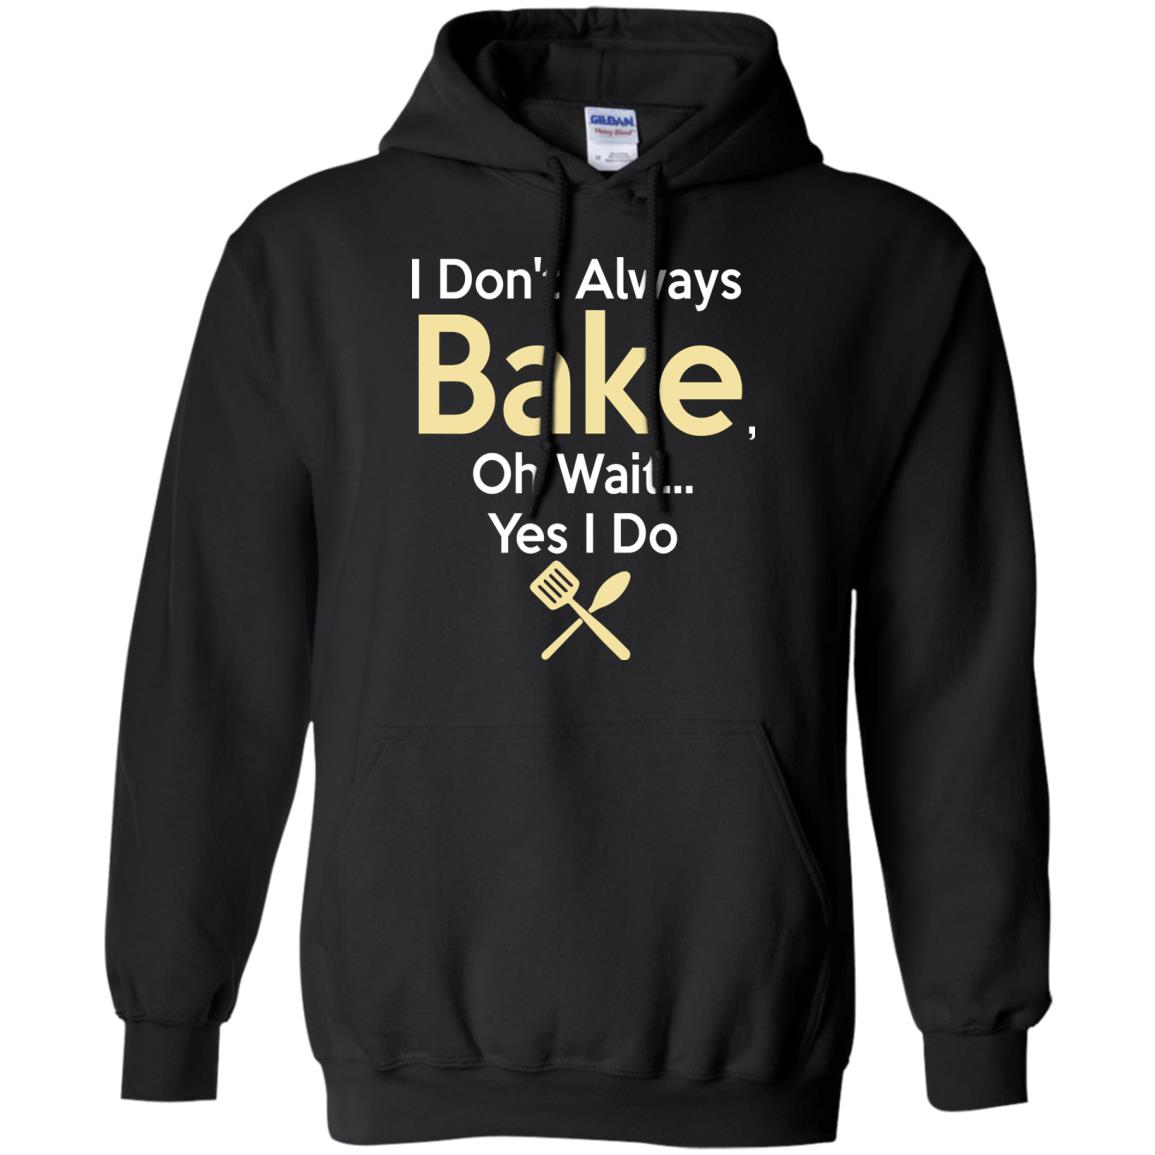 Funny Baking Gift - I Don't Always Bake, Oh Wait, yes I do. Hoodie